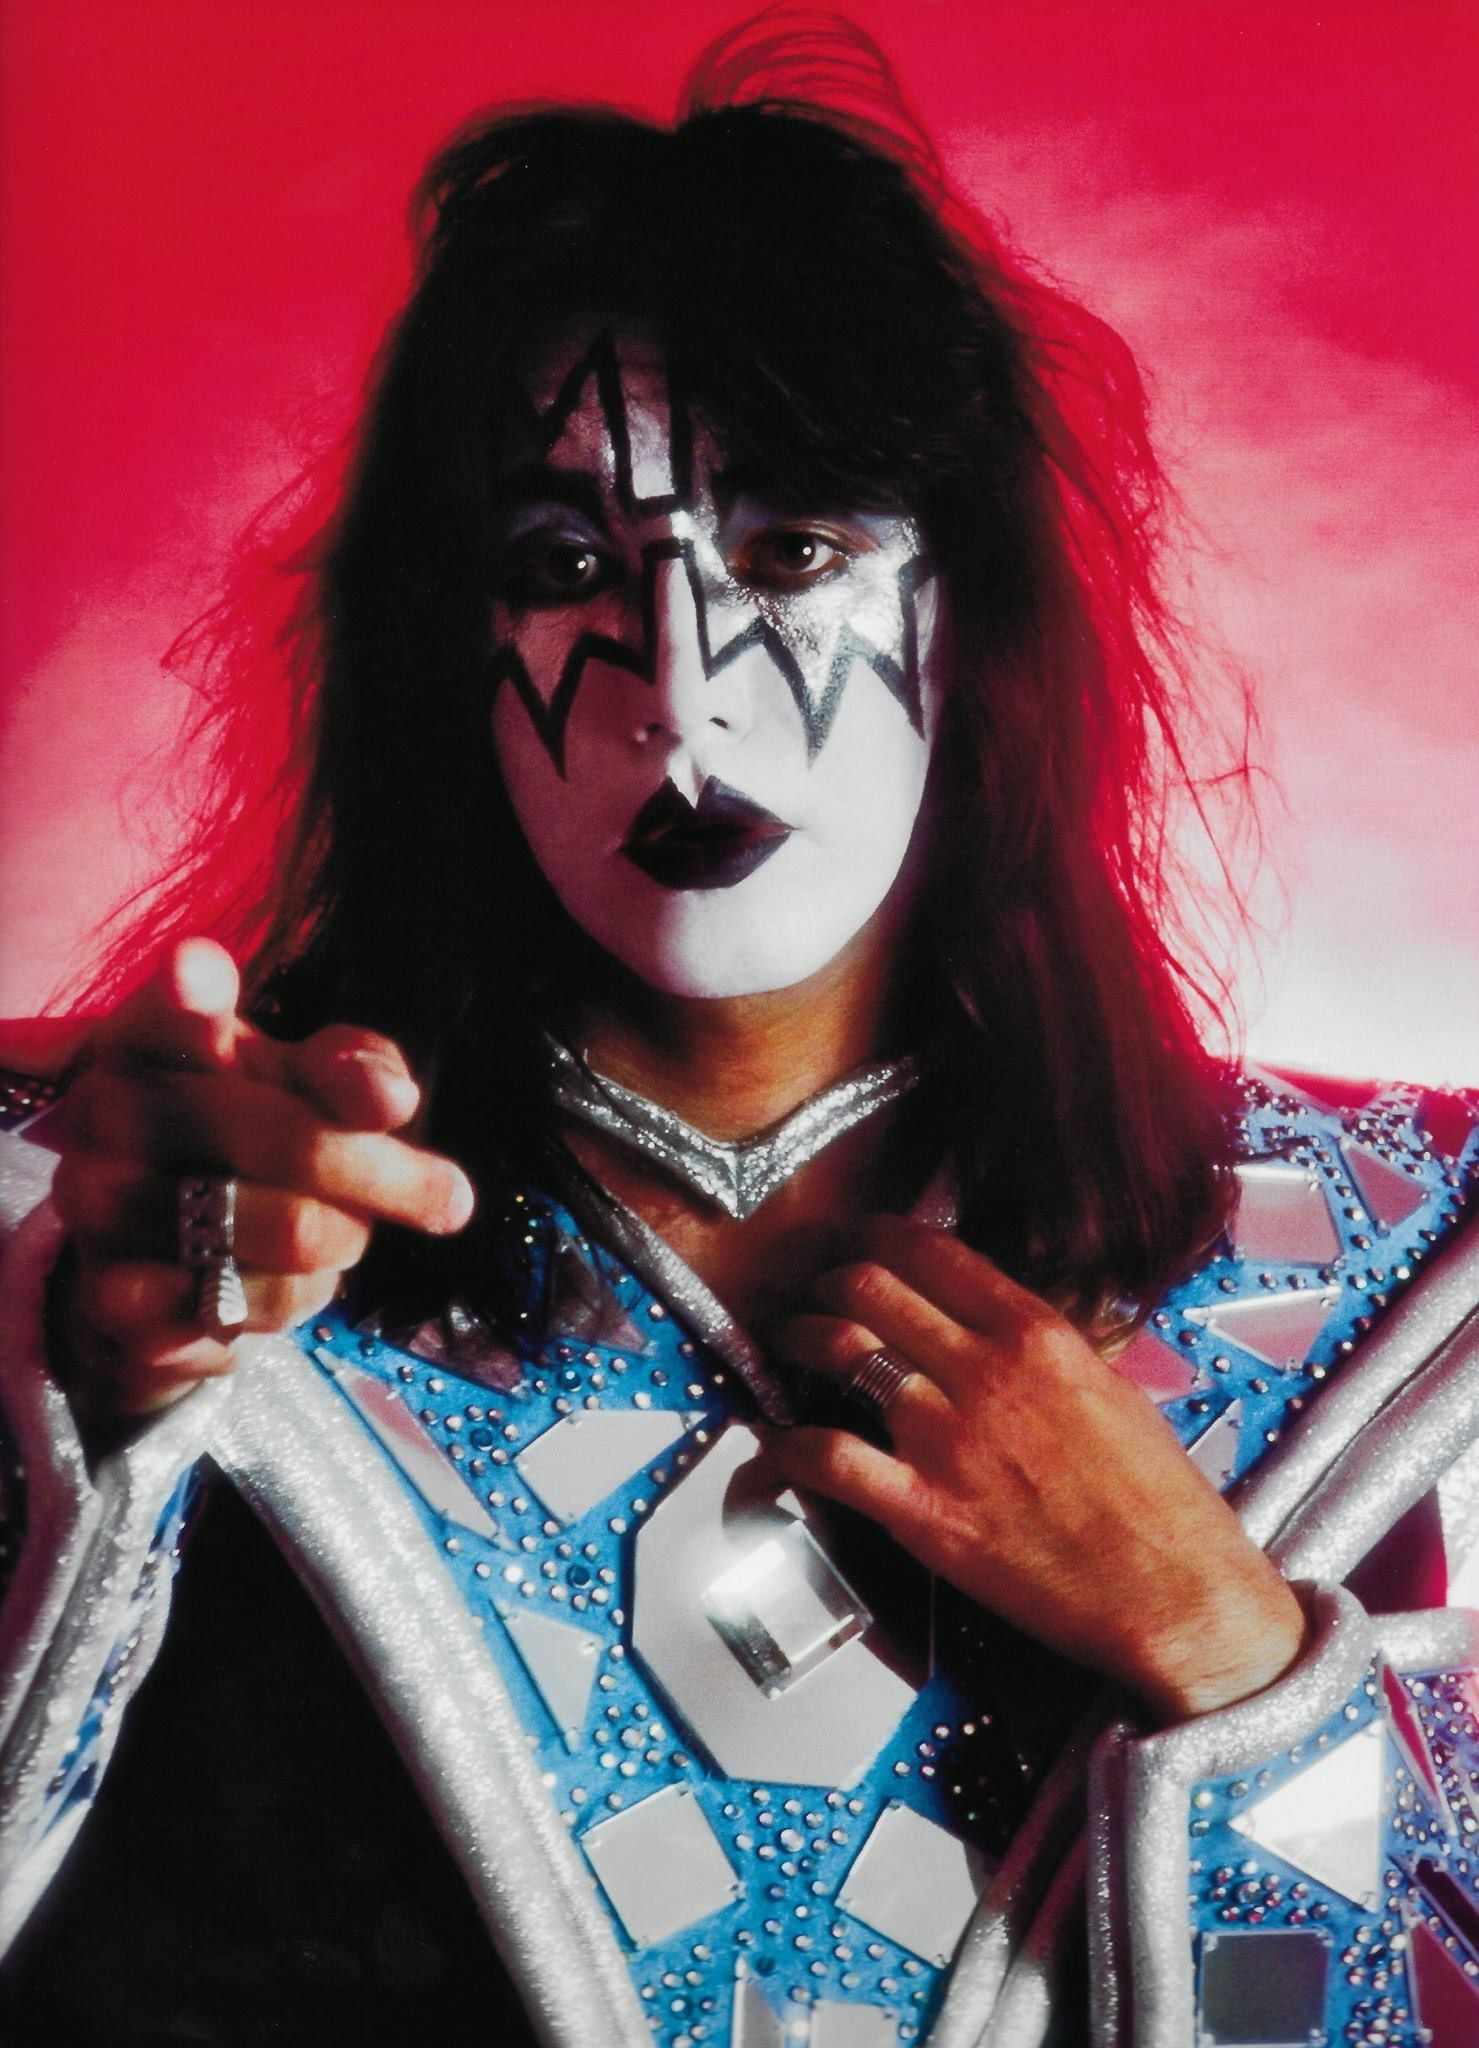 kiss ace frehley 1979 music and musicians in 2019 kiss ace frehley kiss me love. Black Bedroom Furniture Sets. Home Design Ideas